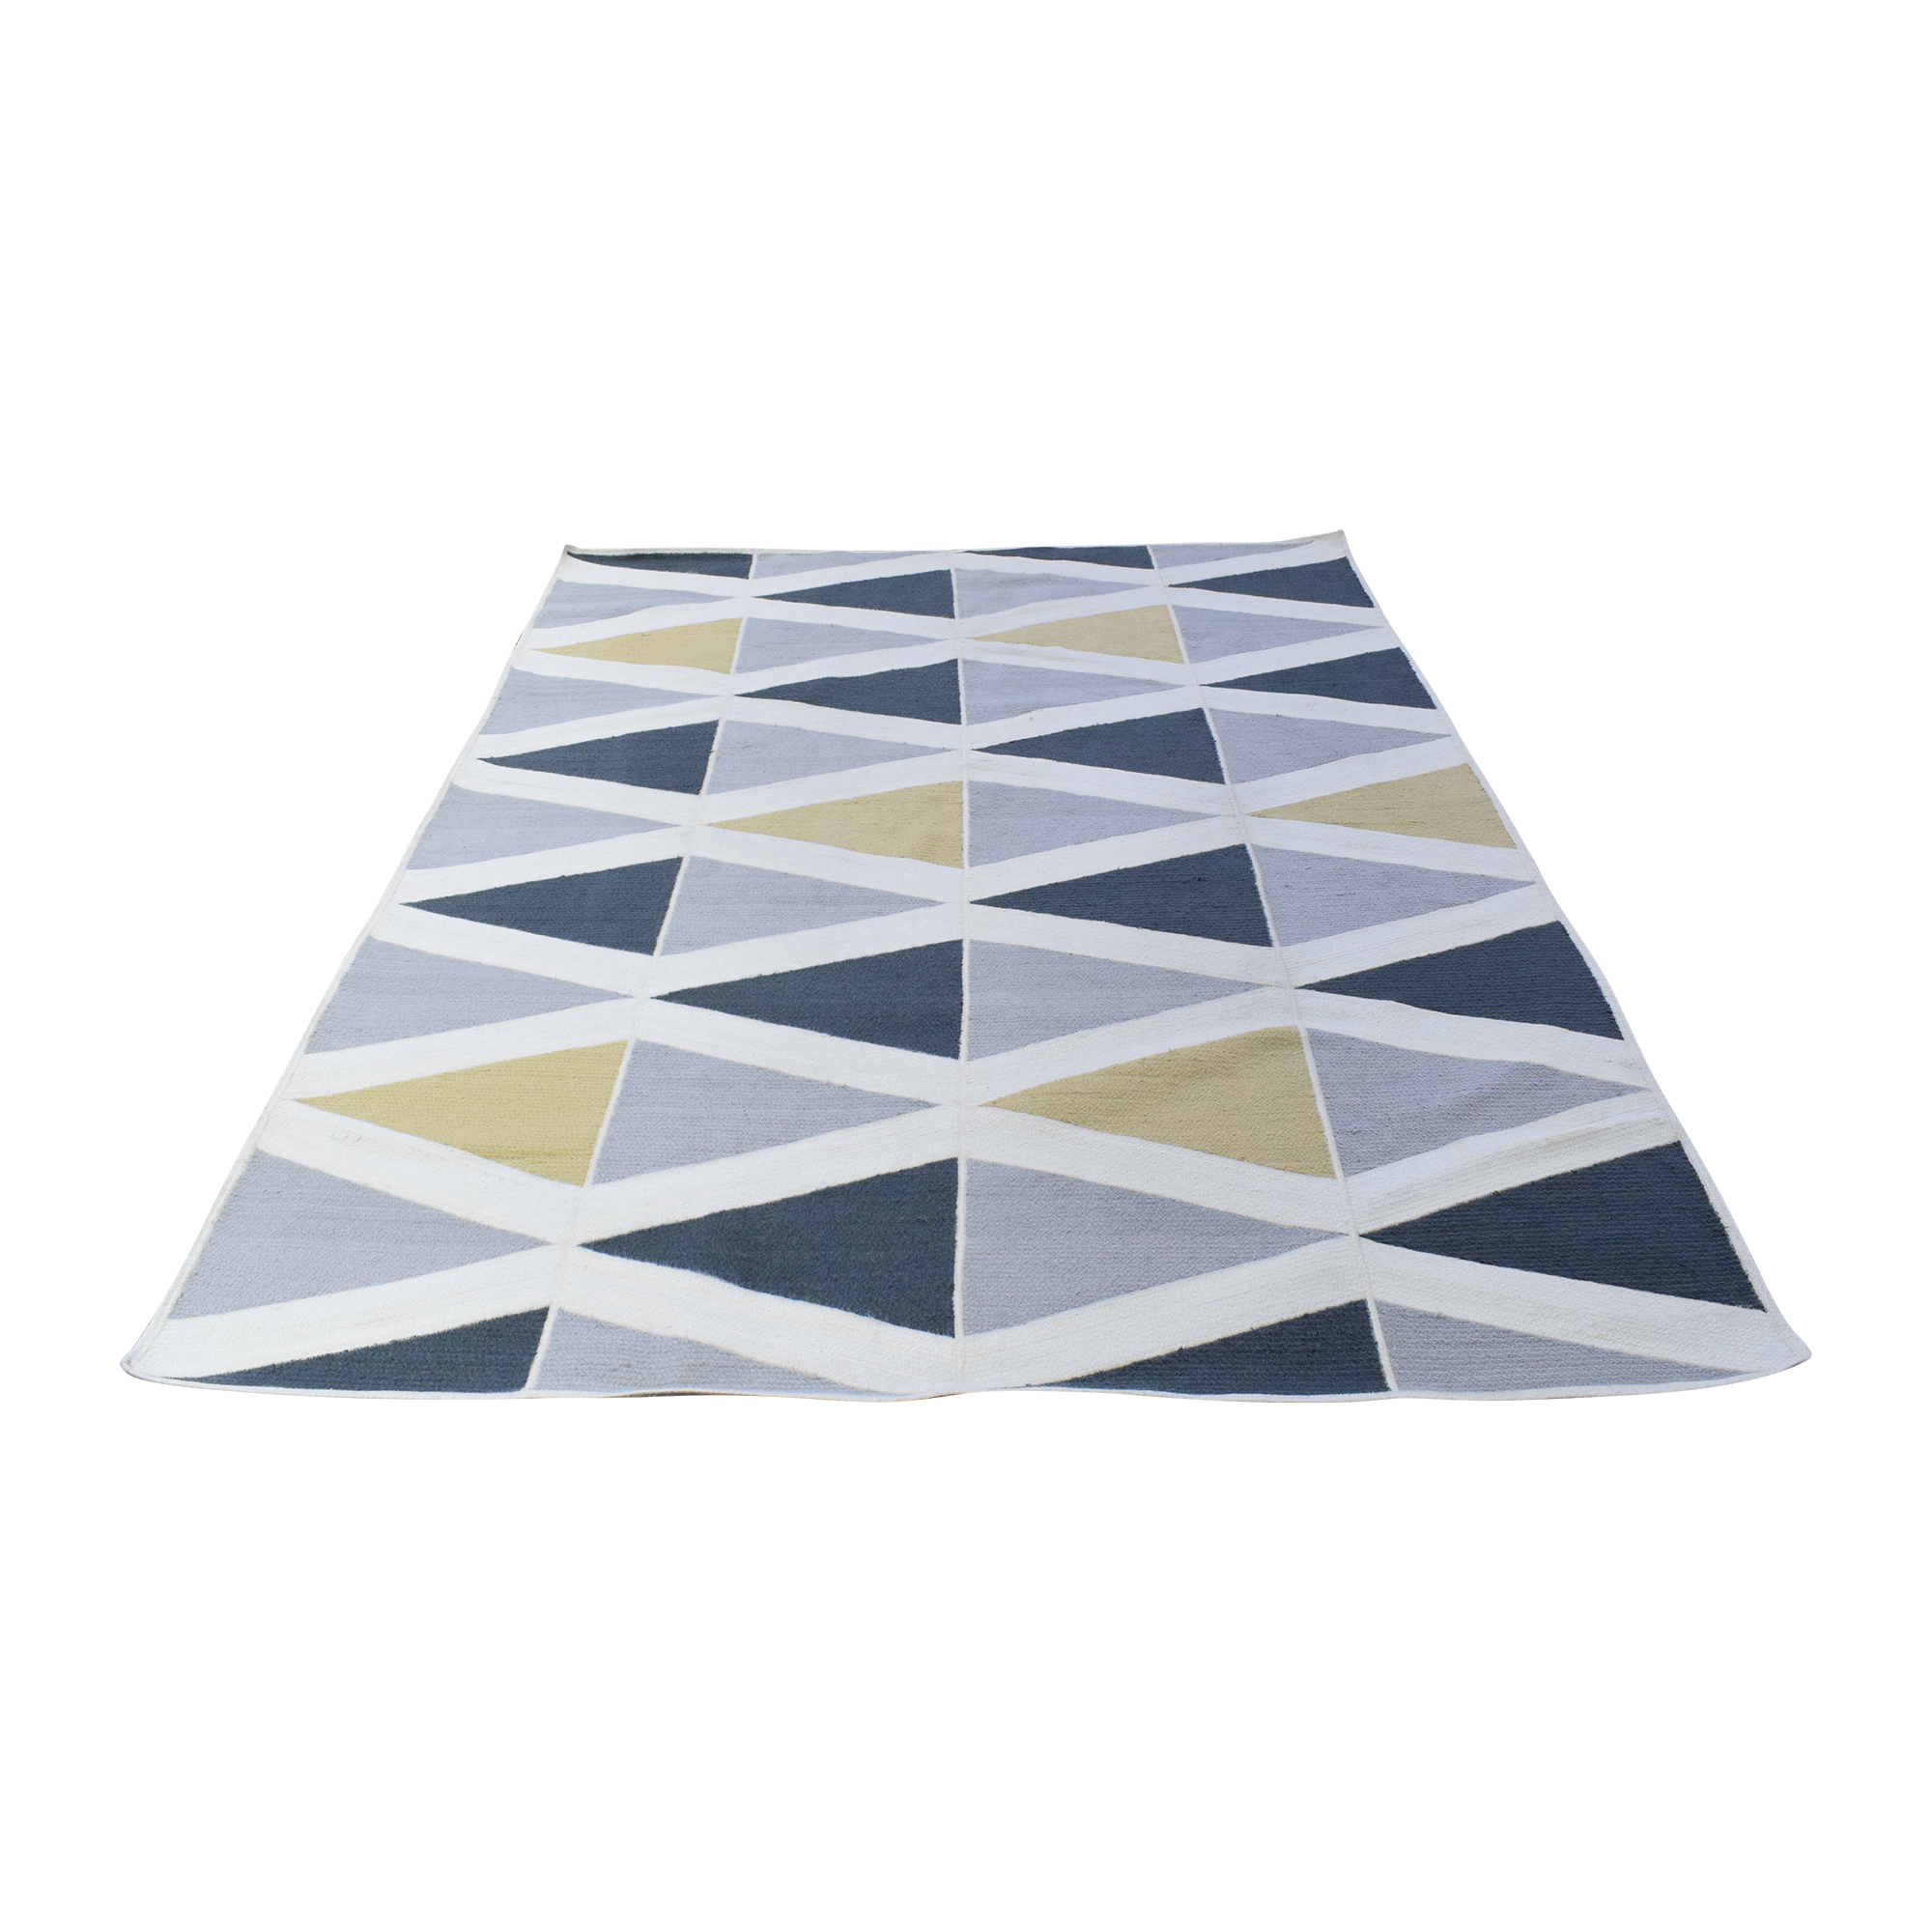 Feizy Feizy Clare Area Rug coupon